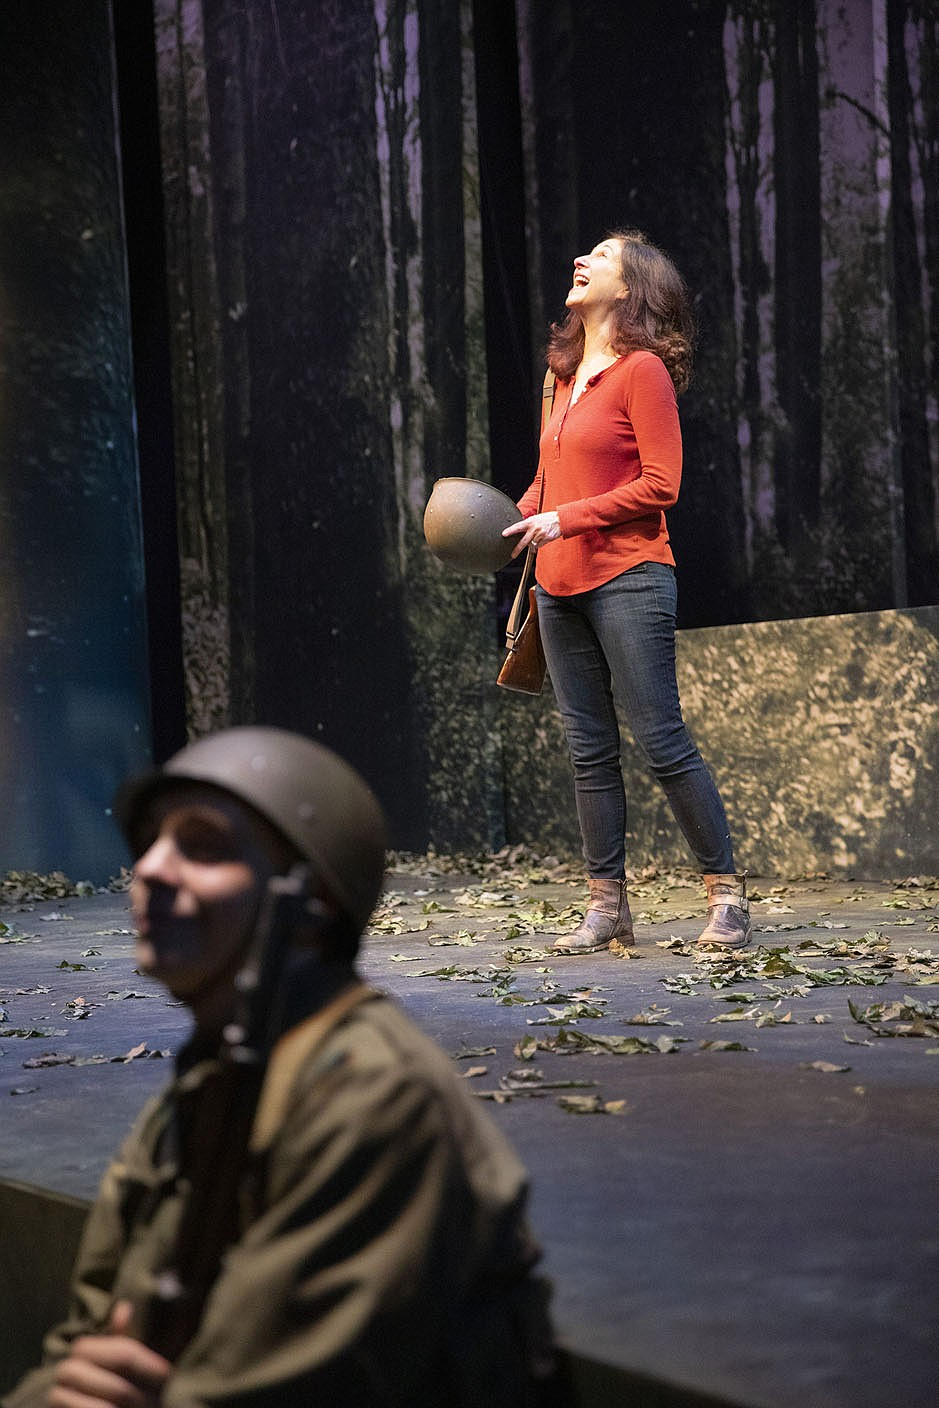 """""""In some respects, every play is personal,"""" says """"My Father's War"""" playwright Robert Ford of the challenges of writing such a deeply personal play. """"It's my feelings, my world view, my values on display up there. That said, this one is acutely personal. At a certain point in the writing of it, I had to remember that the character called Amy Herzberg in the play is ultimately a fiction. I had to stop asking myself, 'What would Amy do?' and instead make decisions about how 'Amy' would behave, what choices she would make, in service of the overall structure of the play. That aspect was incredibly difficult (and, in fact, I still mix up the two Amys in my head). What made this easy was the trove of amazing stories handed to me by my dad-in-law — vaudevillian, ironic, heartbreaking, deeply insightful. All I had to do was pick my faves and line them up in some sensible way, while discovering what it was that I wanted to say – which became the story that frames the play.""""  (Courtesy Photo/Wesley Hitt)"""